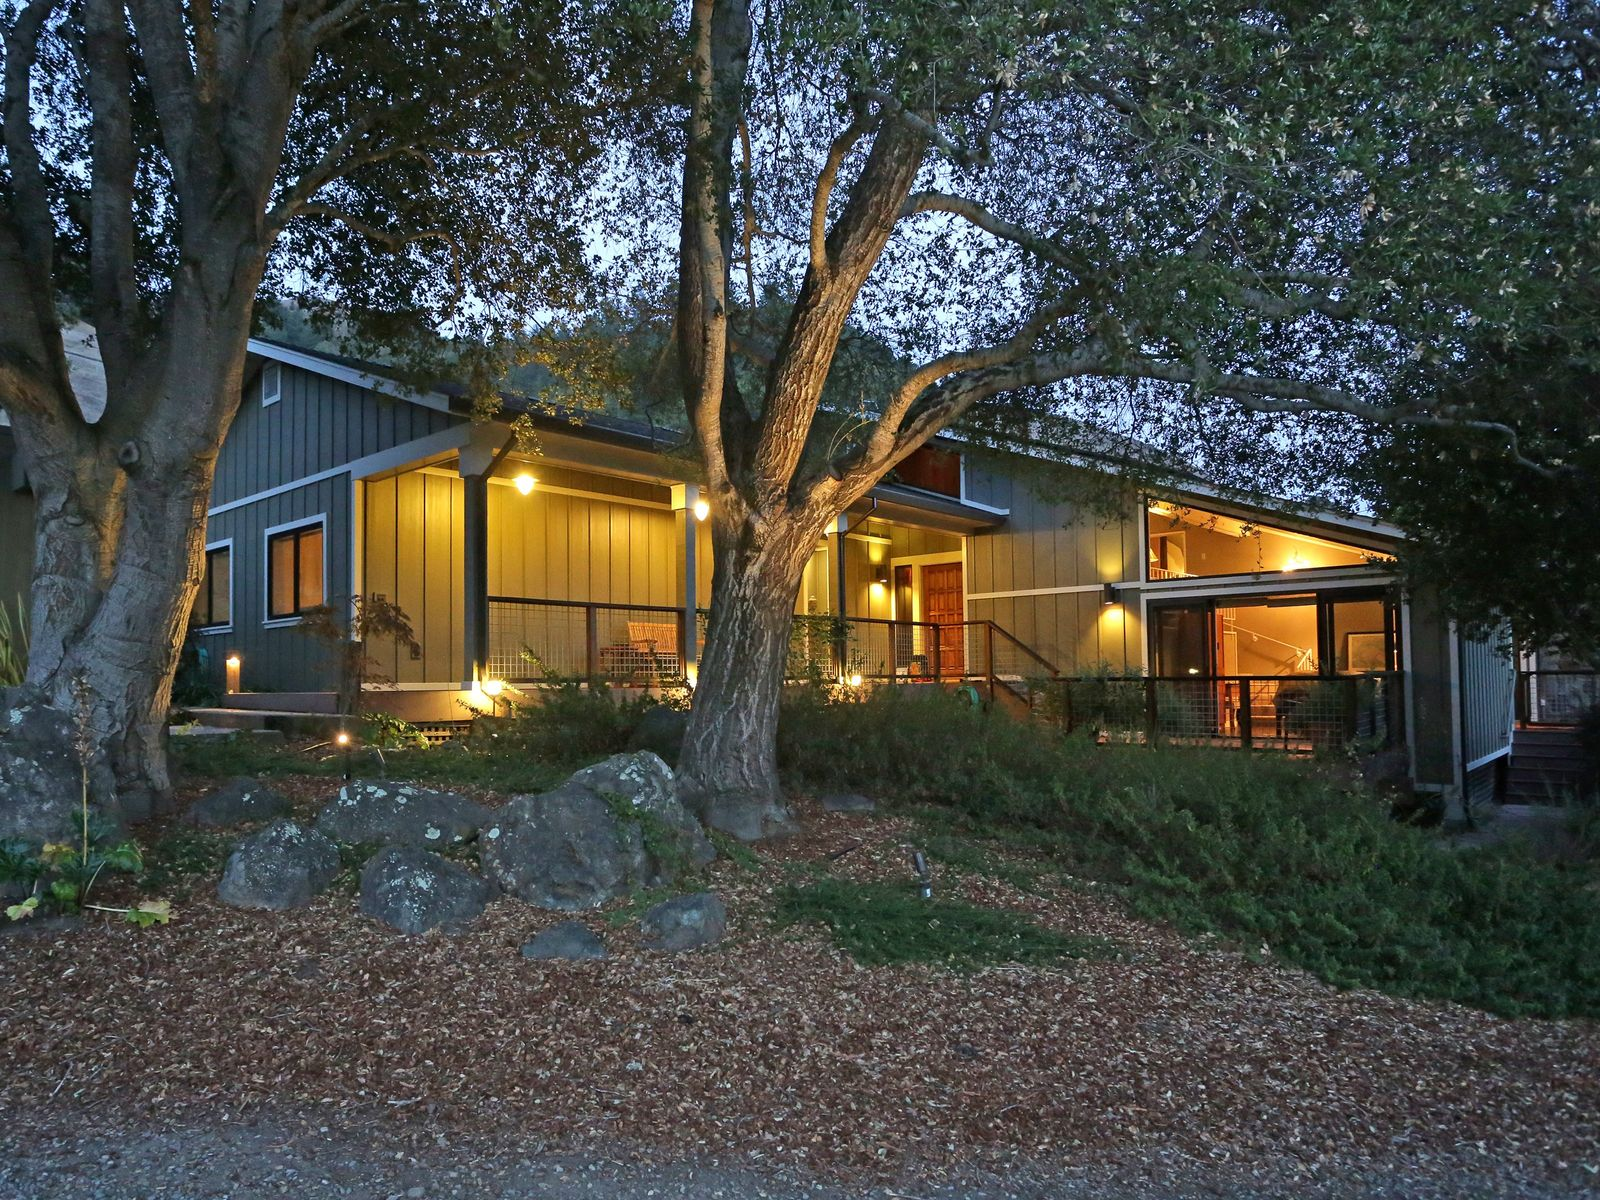 Nicasio Valley Road, Nicasio CA Single Family Home - San Francisco Real Estate